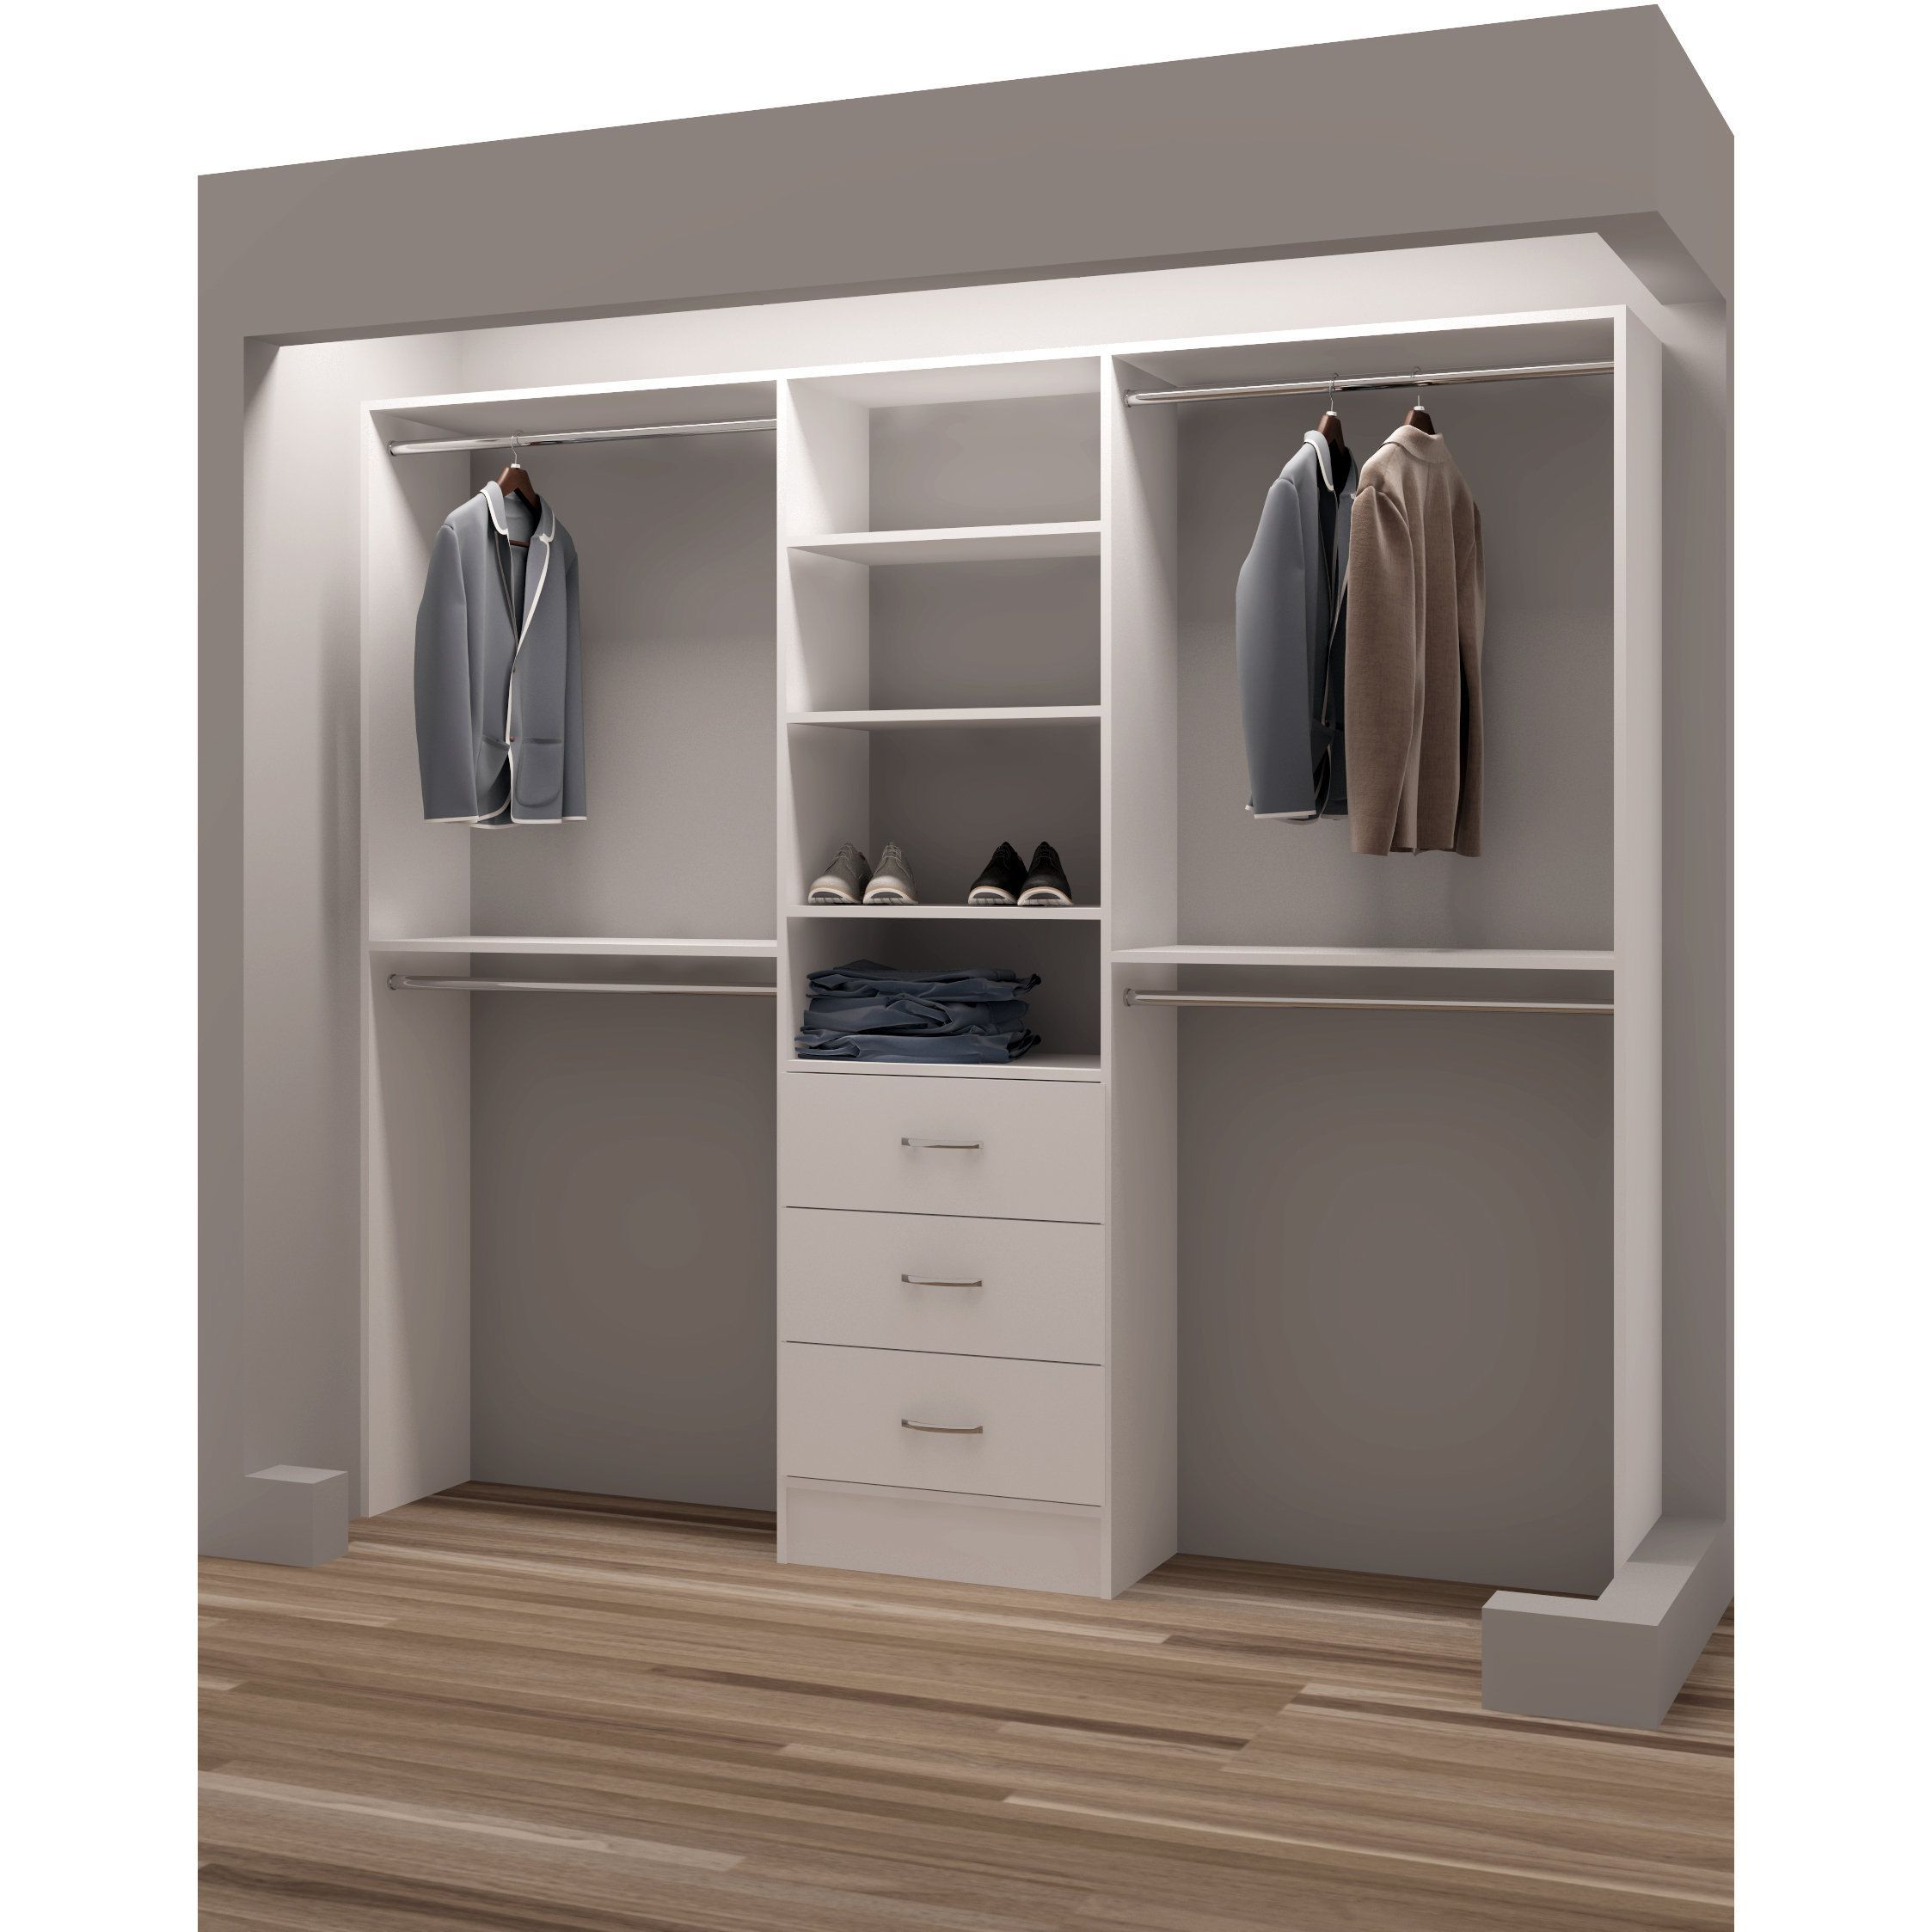 House · TidySquares Classic Wood 87 inch Reach in Closet Organizer